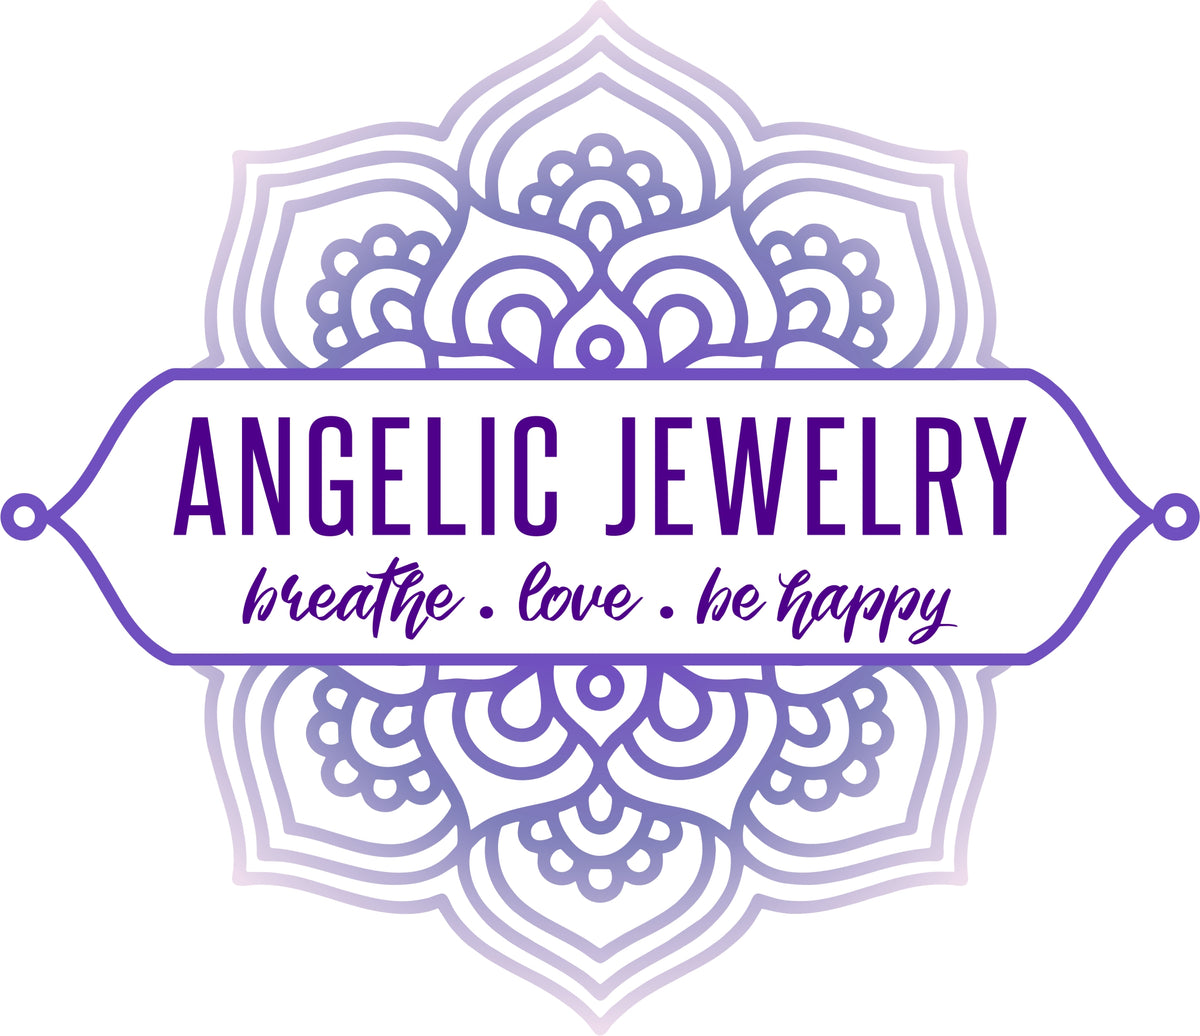 Handmade Jewelry For Women Beautifully Crafted With Gemstones | Angelic Jewelry